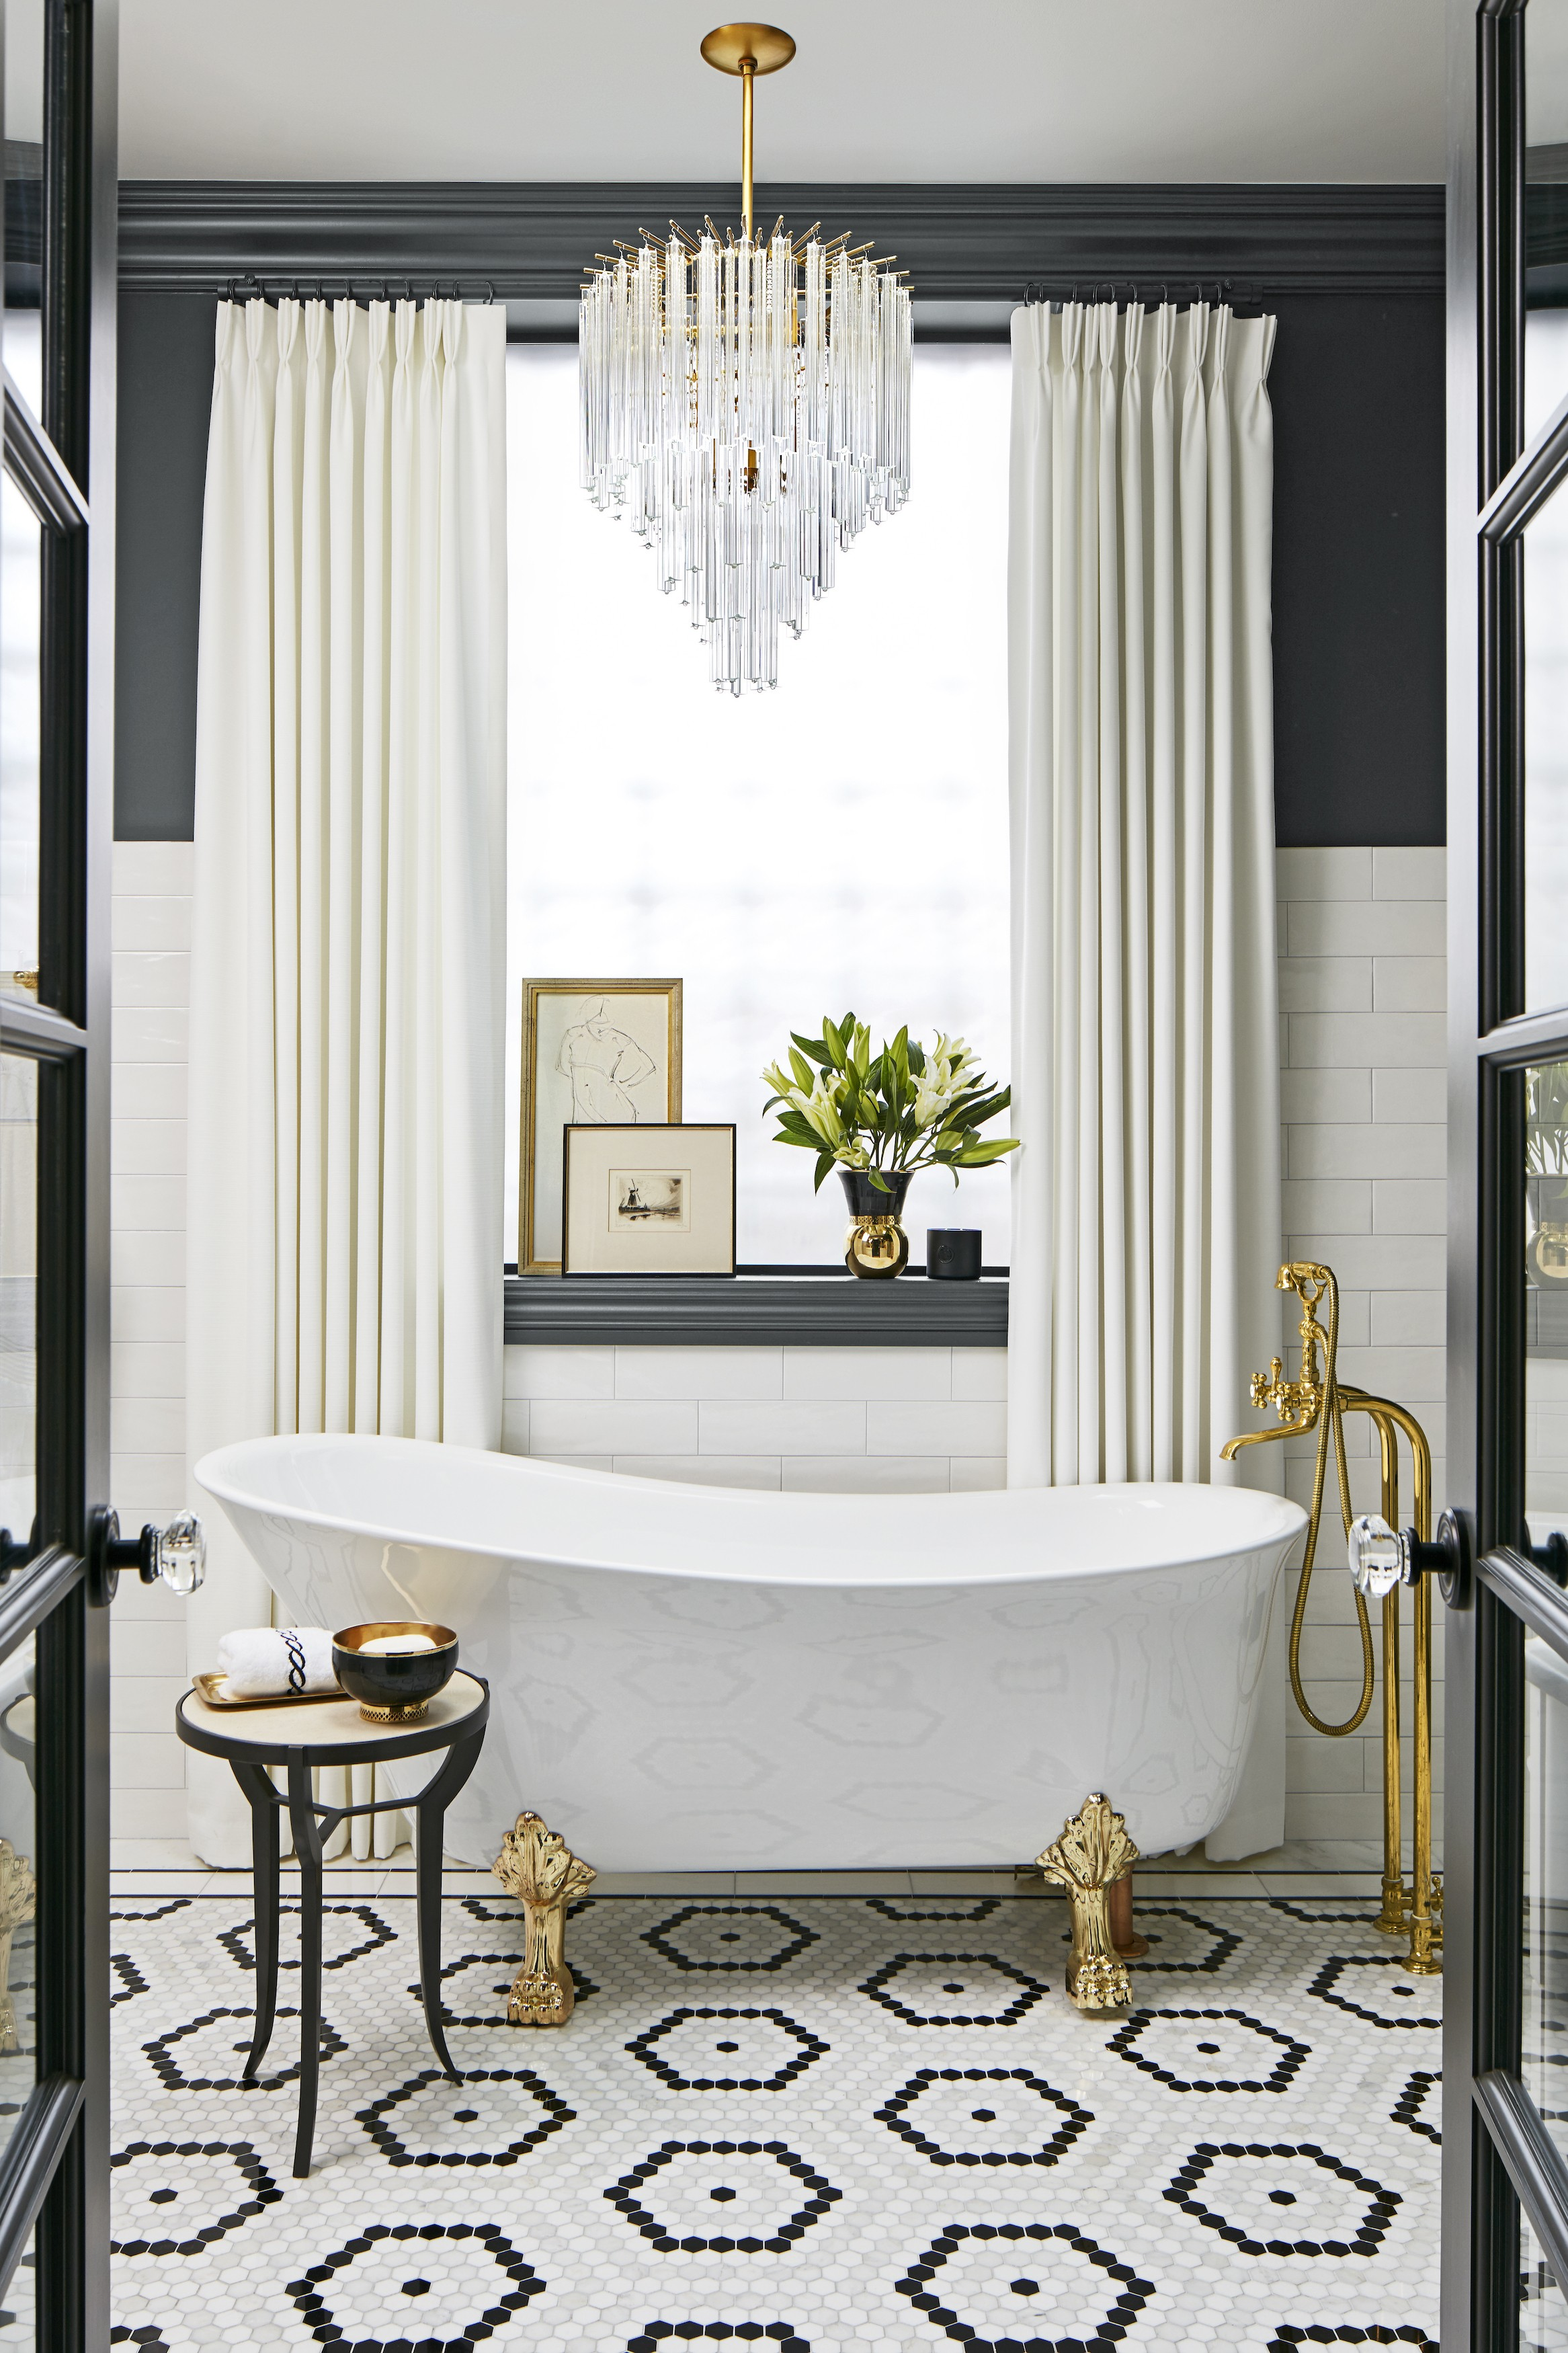 Best Bathroom Colors Lovely Best Bathroom Paint Colors Popular Ideas for Bathroom Wall Colors Image